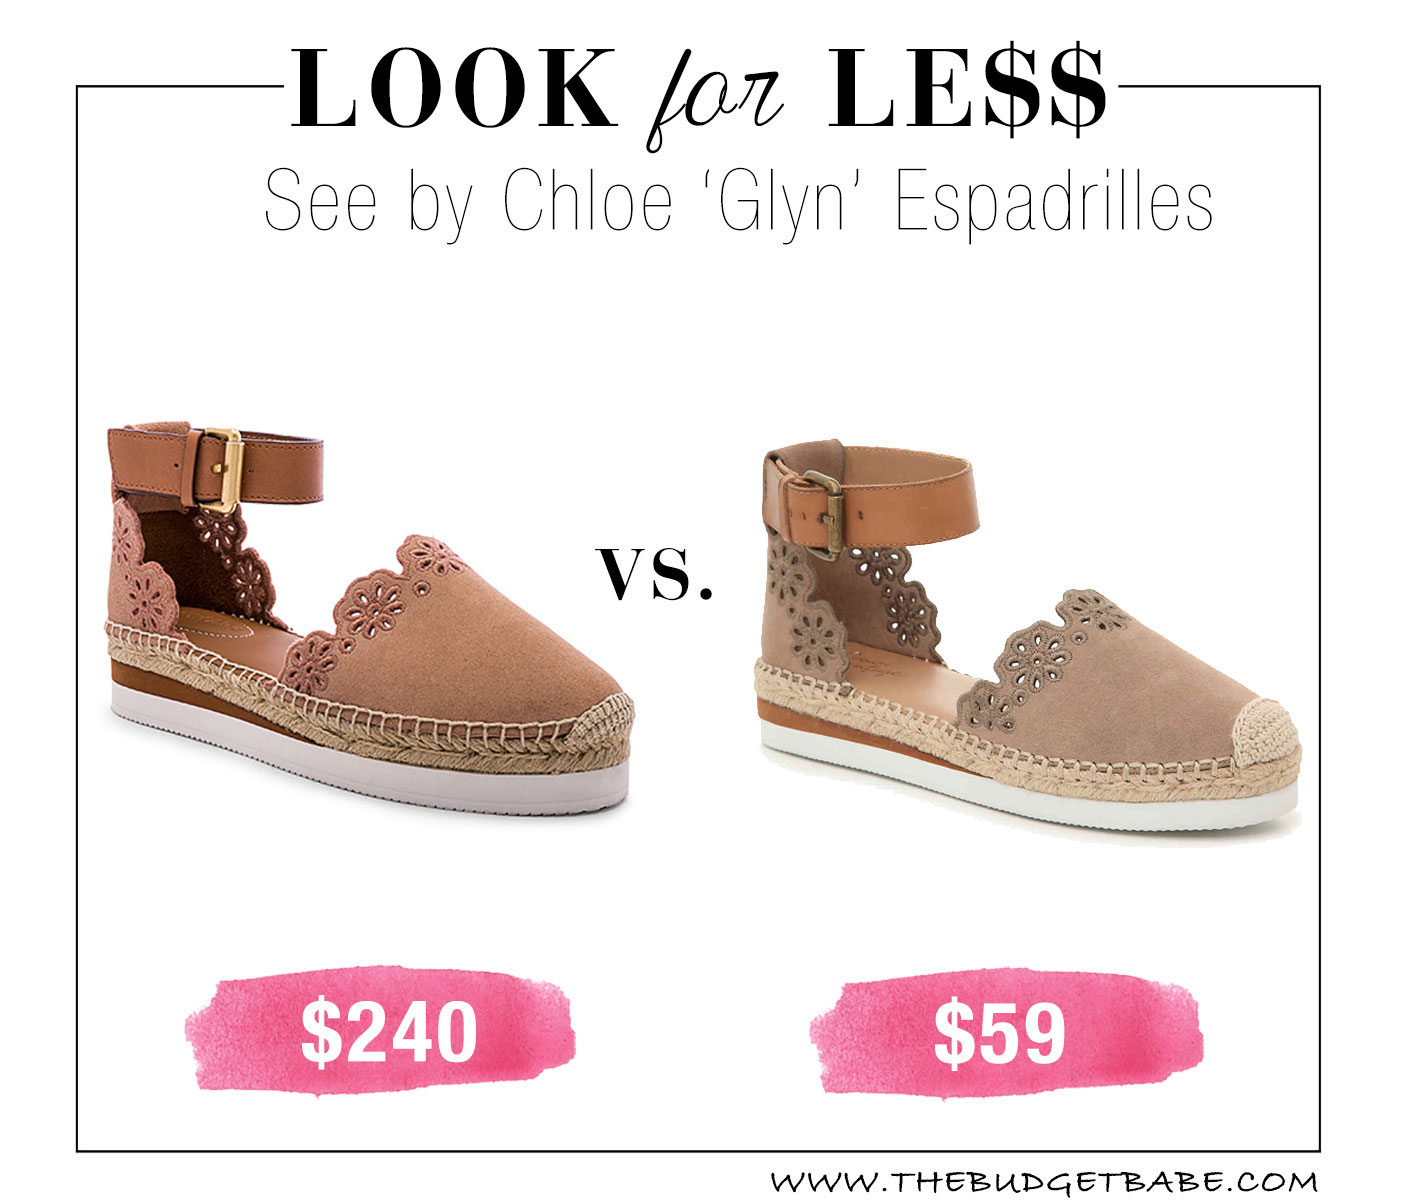 See by Chloe flower laser cut espadrille sandals look for less!